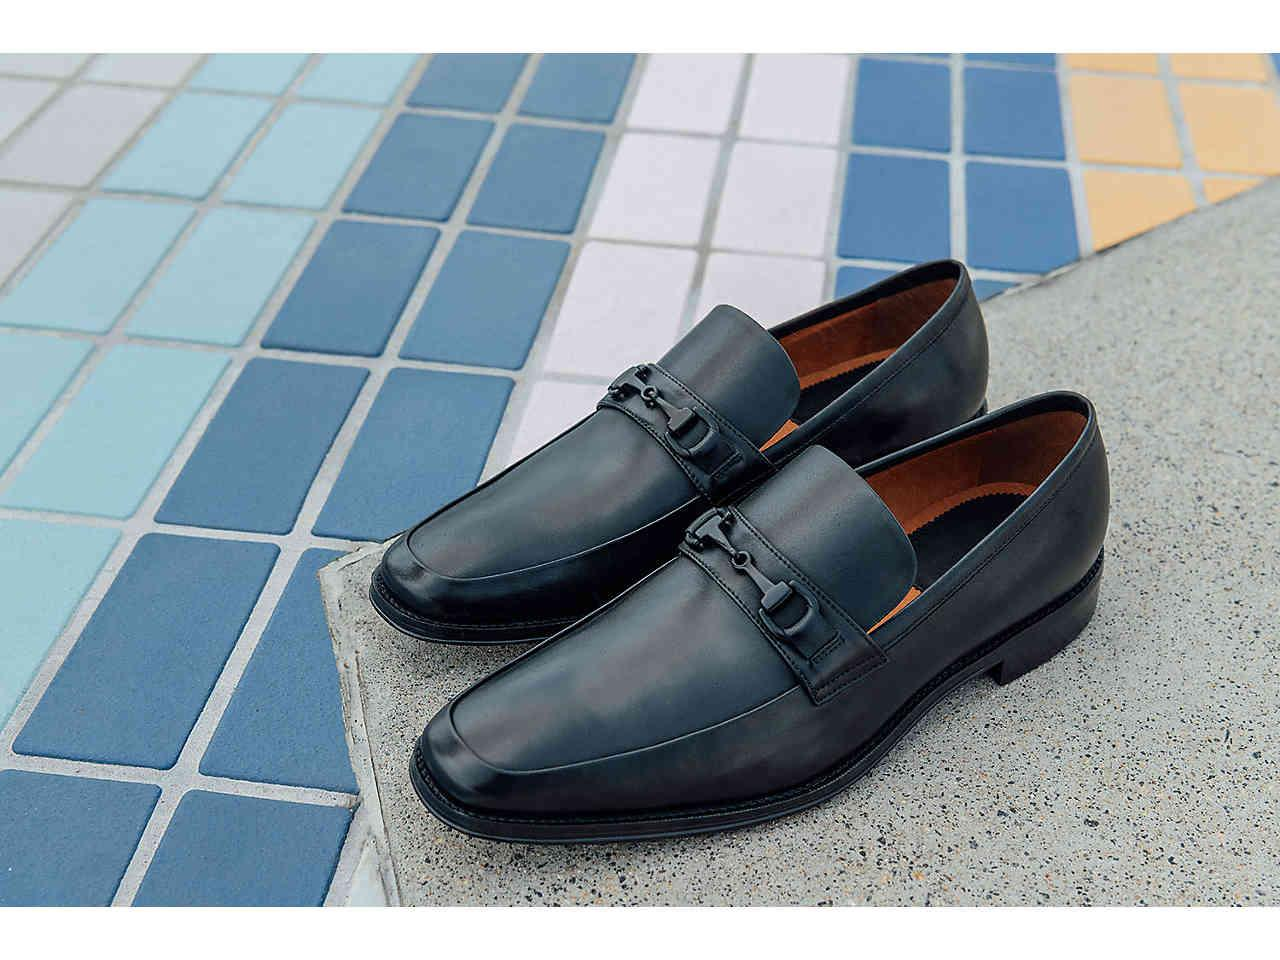 c81643fea43 Blake McKay - Black Harrison M6 Loafer for Men - Lyst. View fullscreen